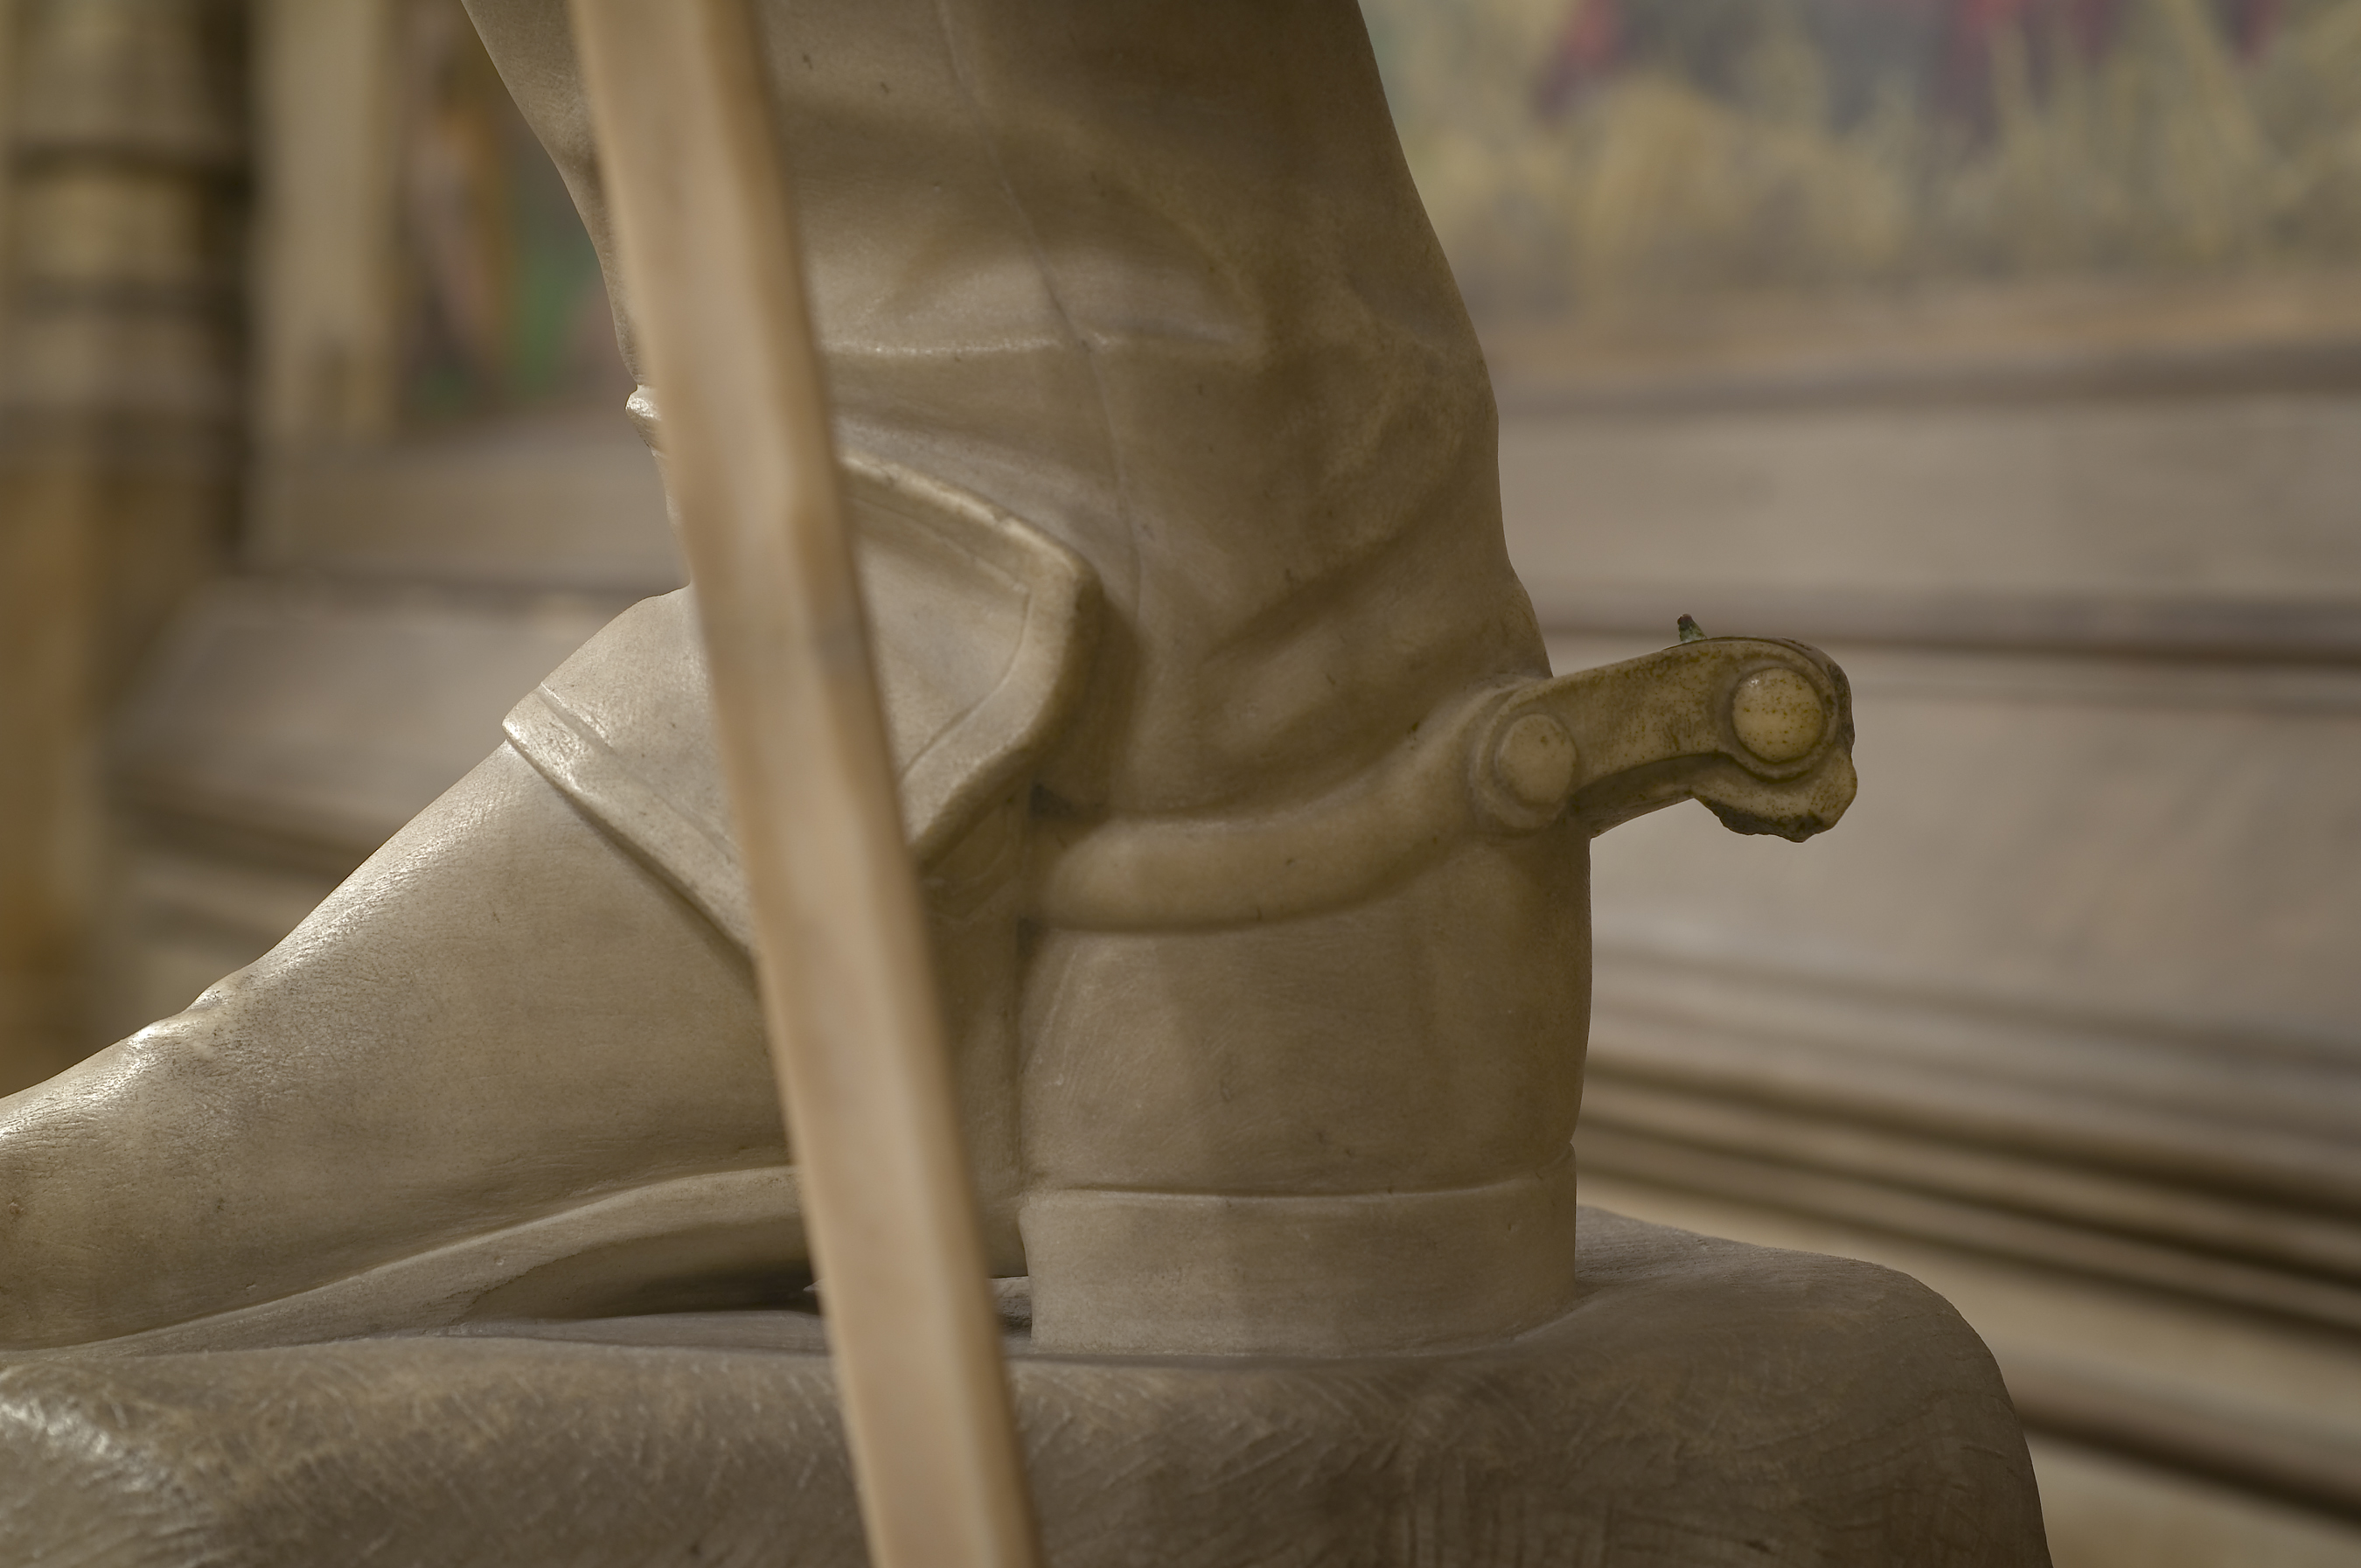 Lucius Cary, 2nd Viscount Falkland (1610-43) by John Bell. Detail showing broken spur. Parliamentary Art Collection, S35.